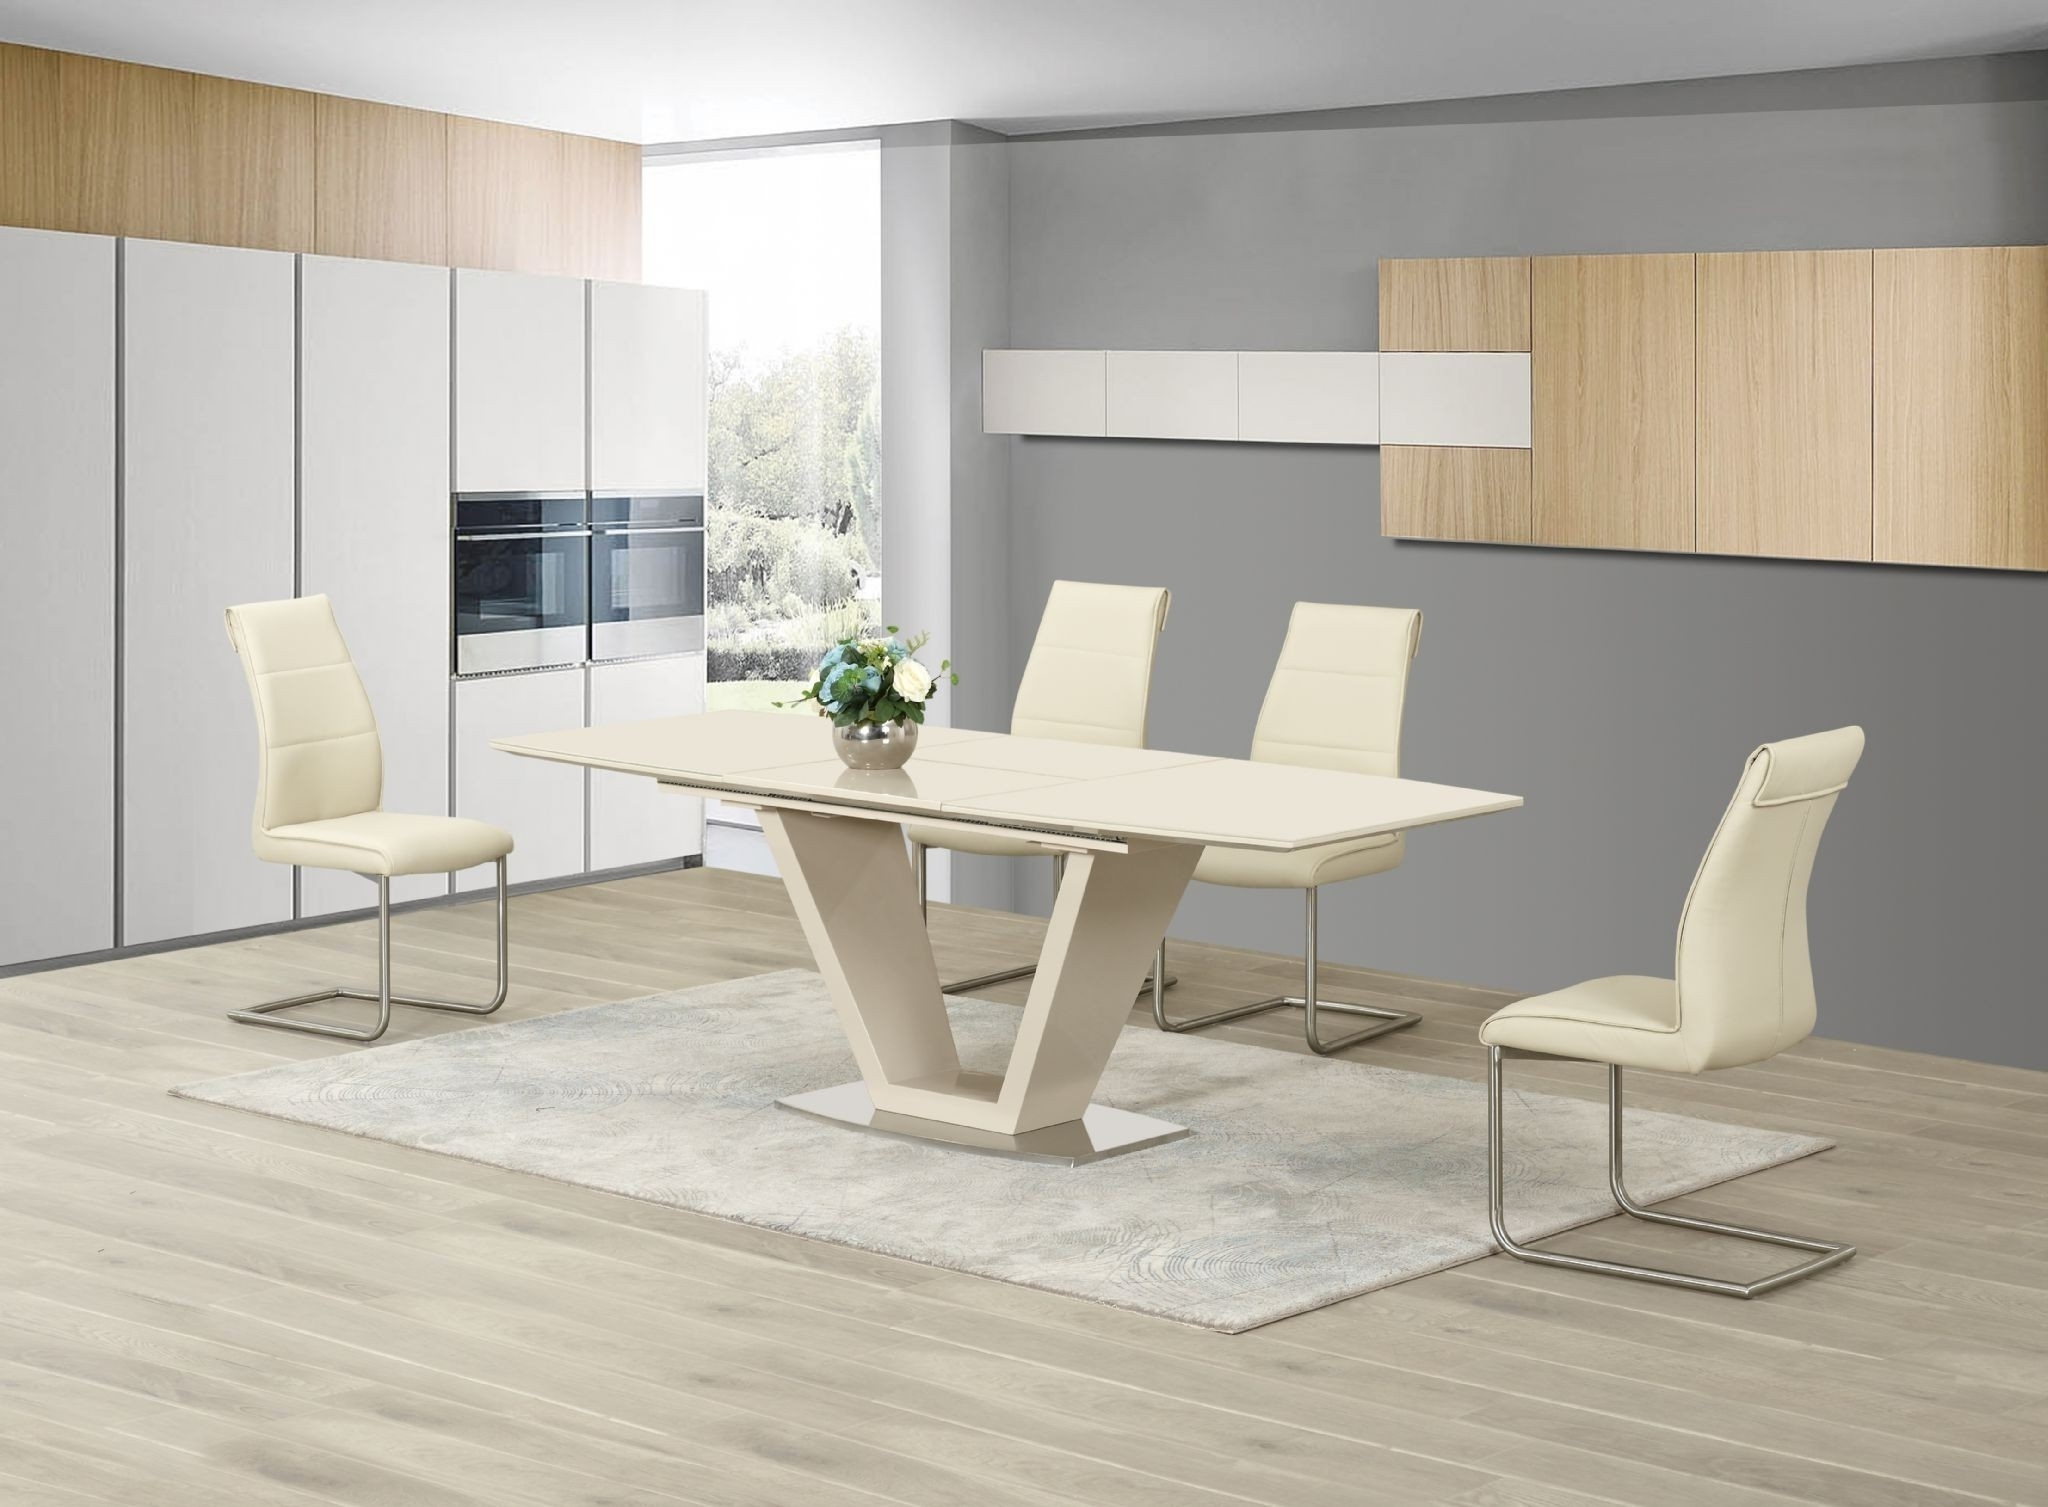 High Gloss Round Dining Tables intended for Well-known White High Gloss Extending Dining Table Beautiful White Extending